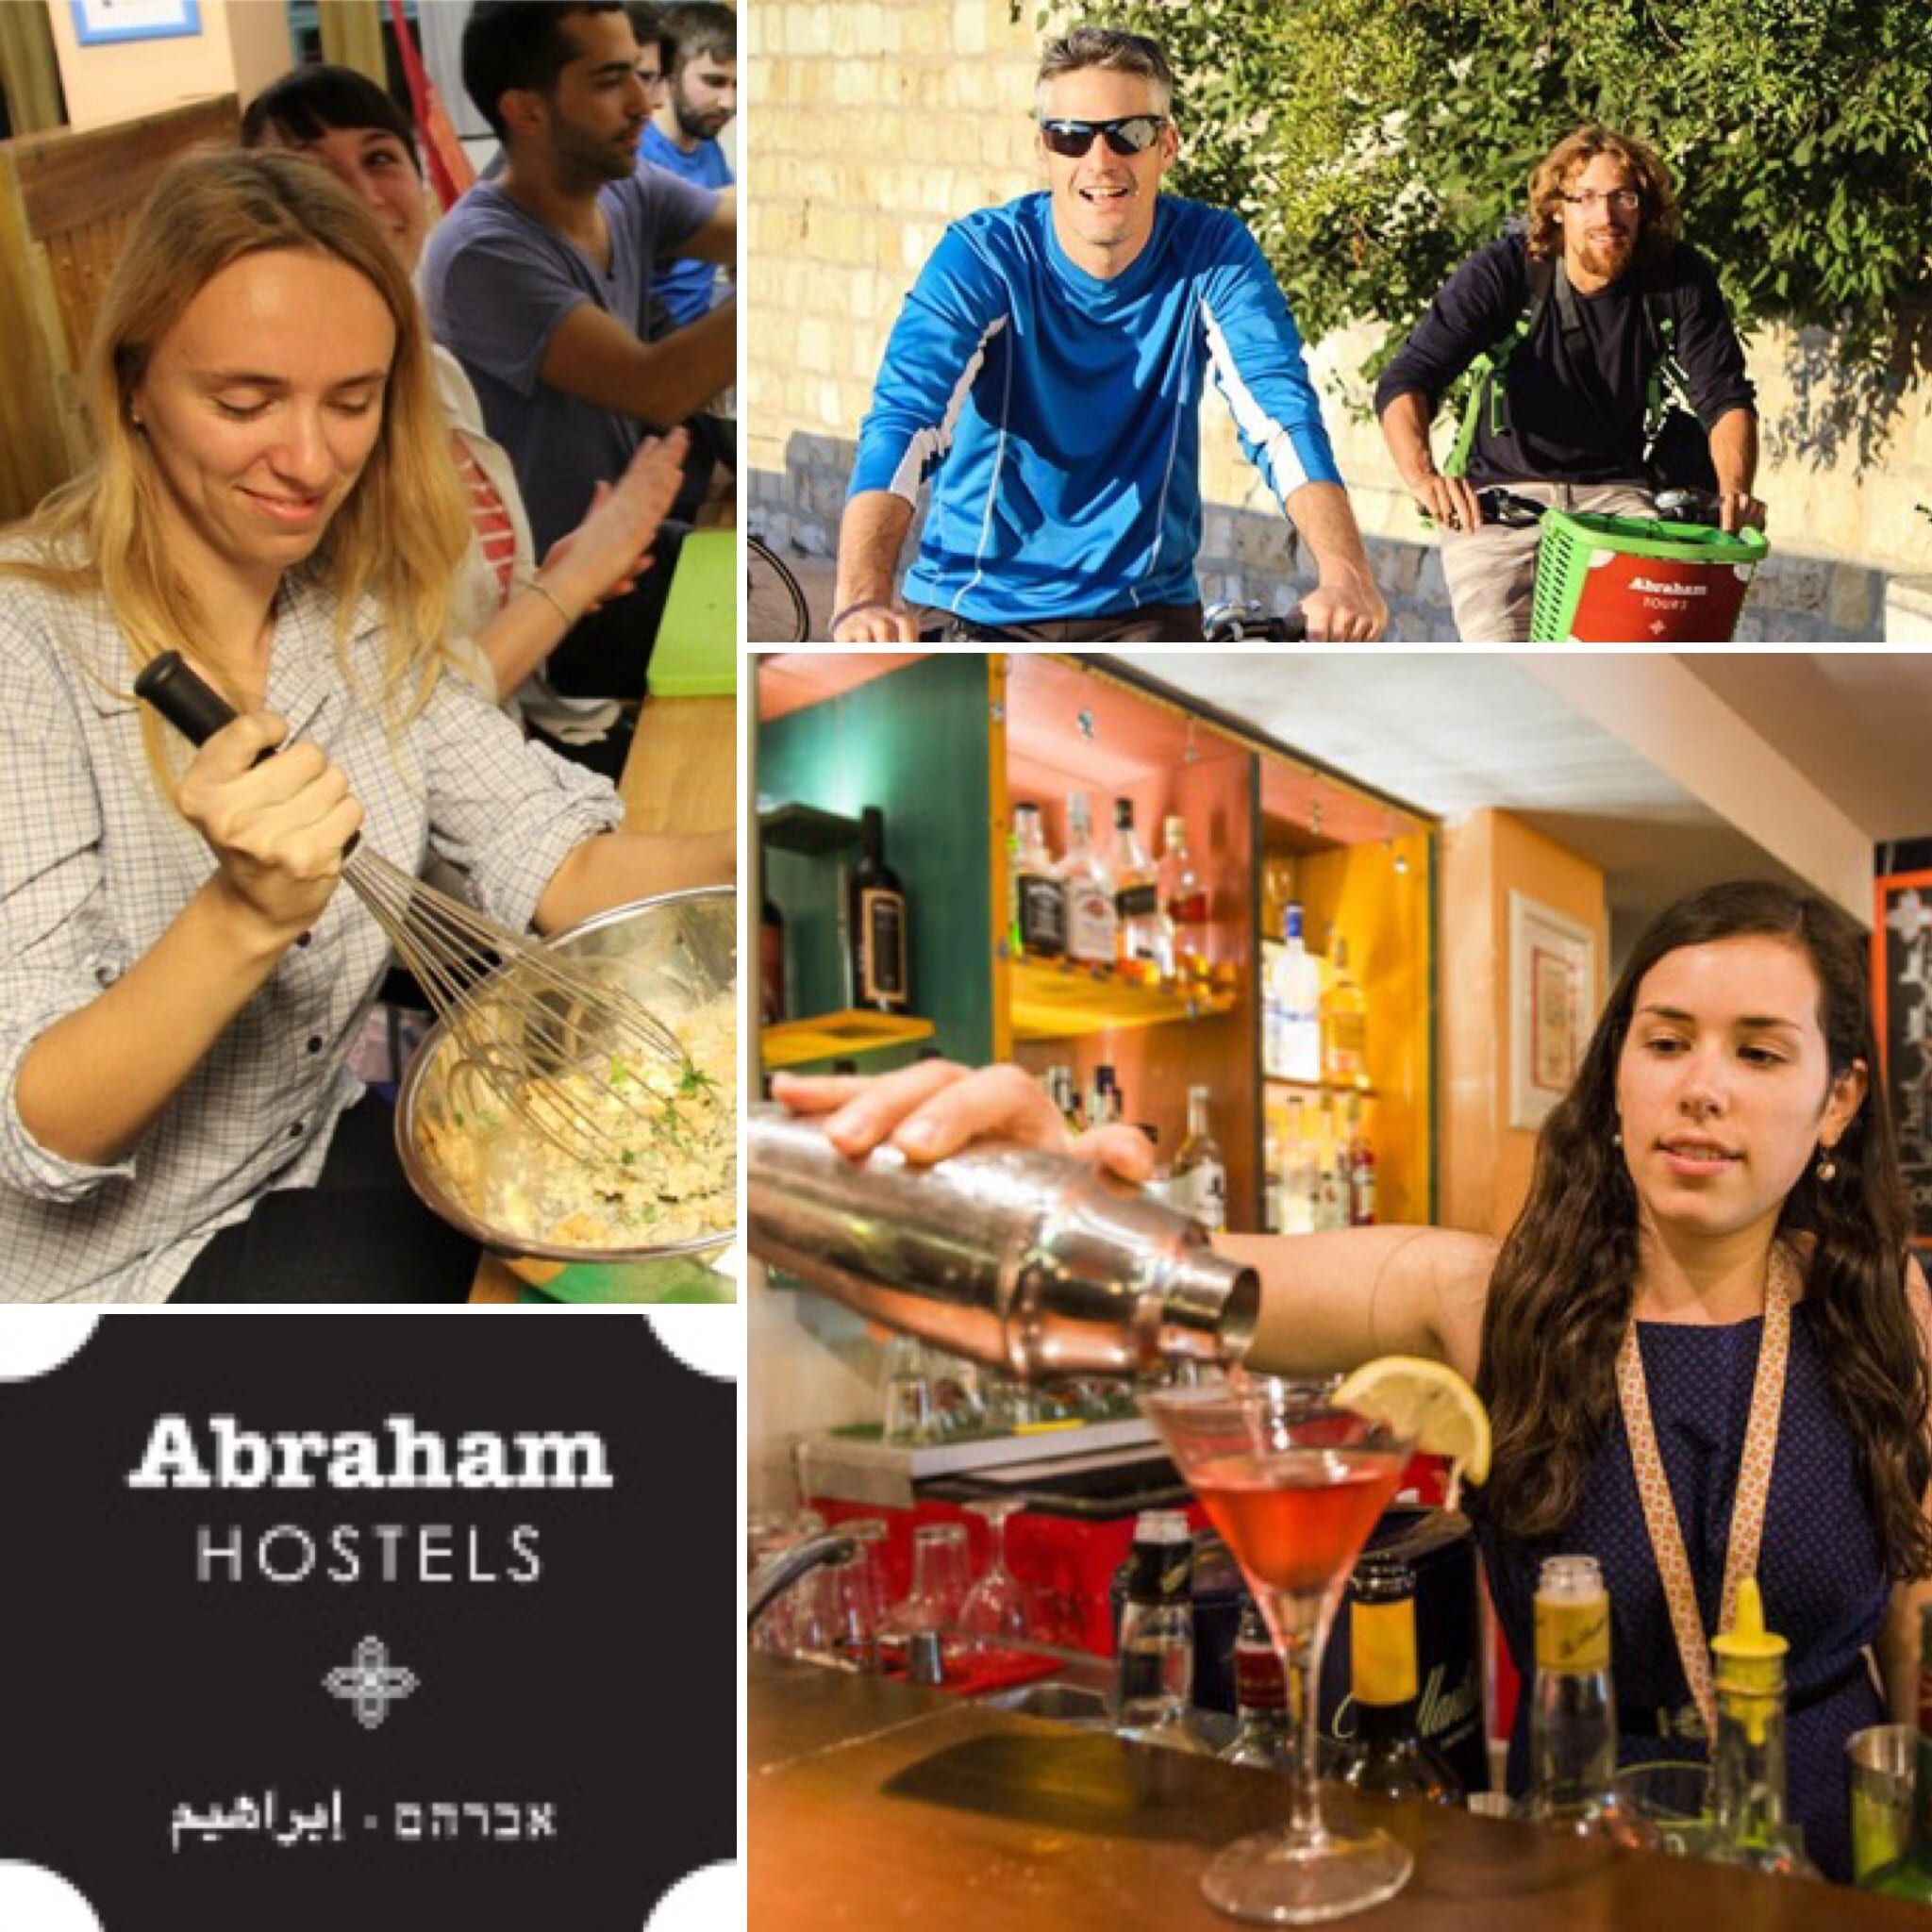 TBEX International 2017, Jerusalem